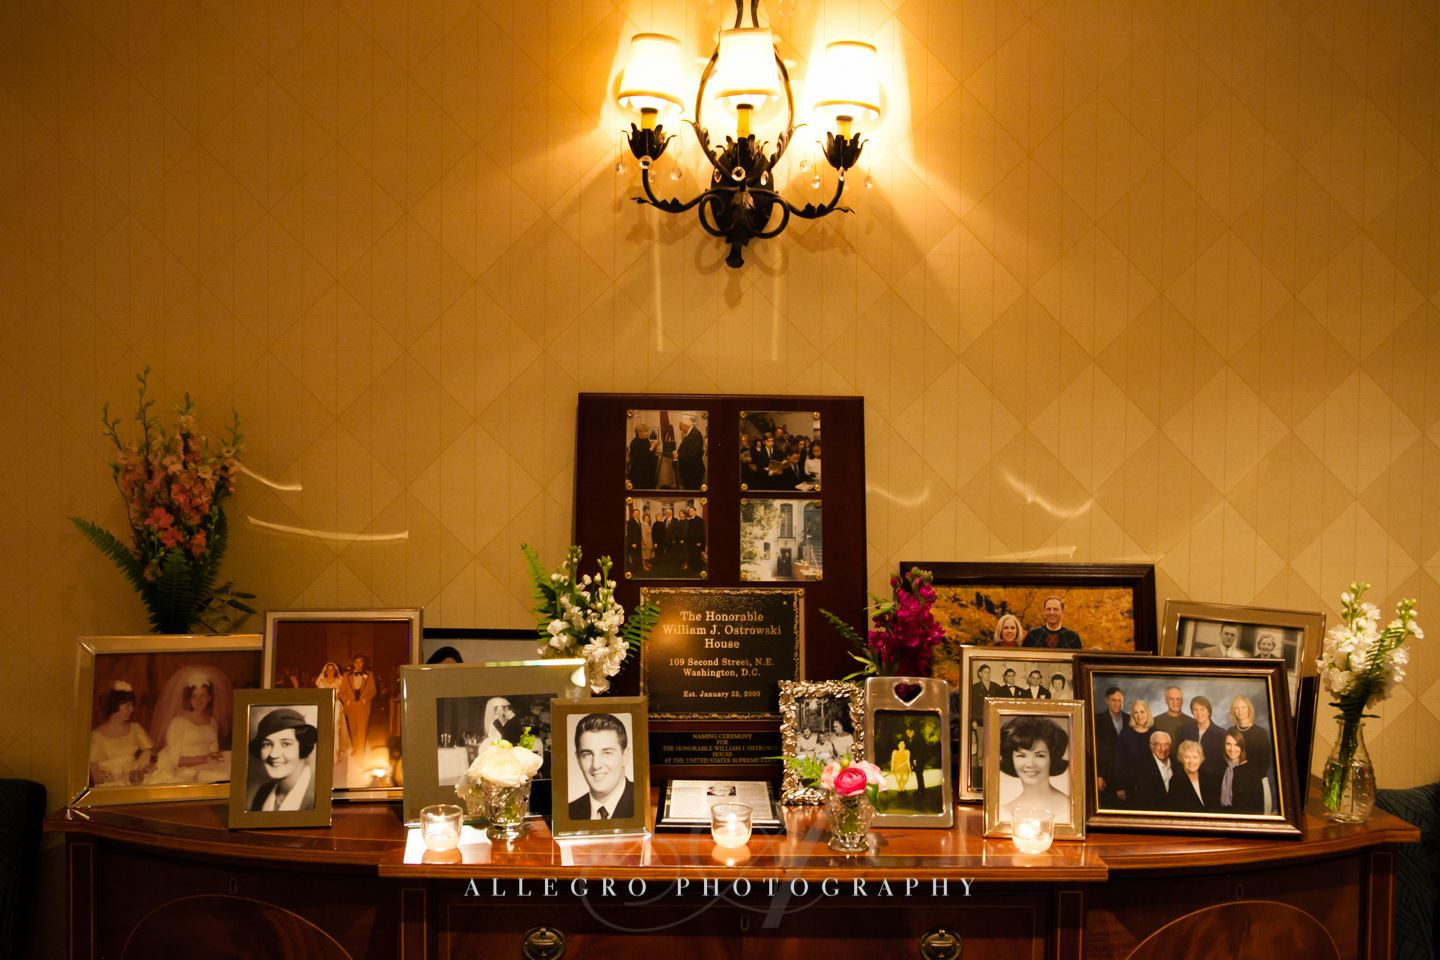 Memories of weddings past table in the lobby of wharf room- photo by allegro photography